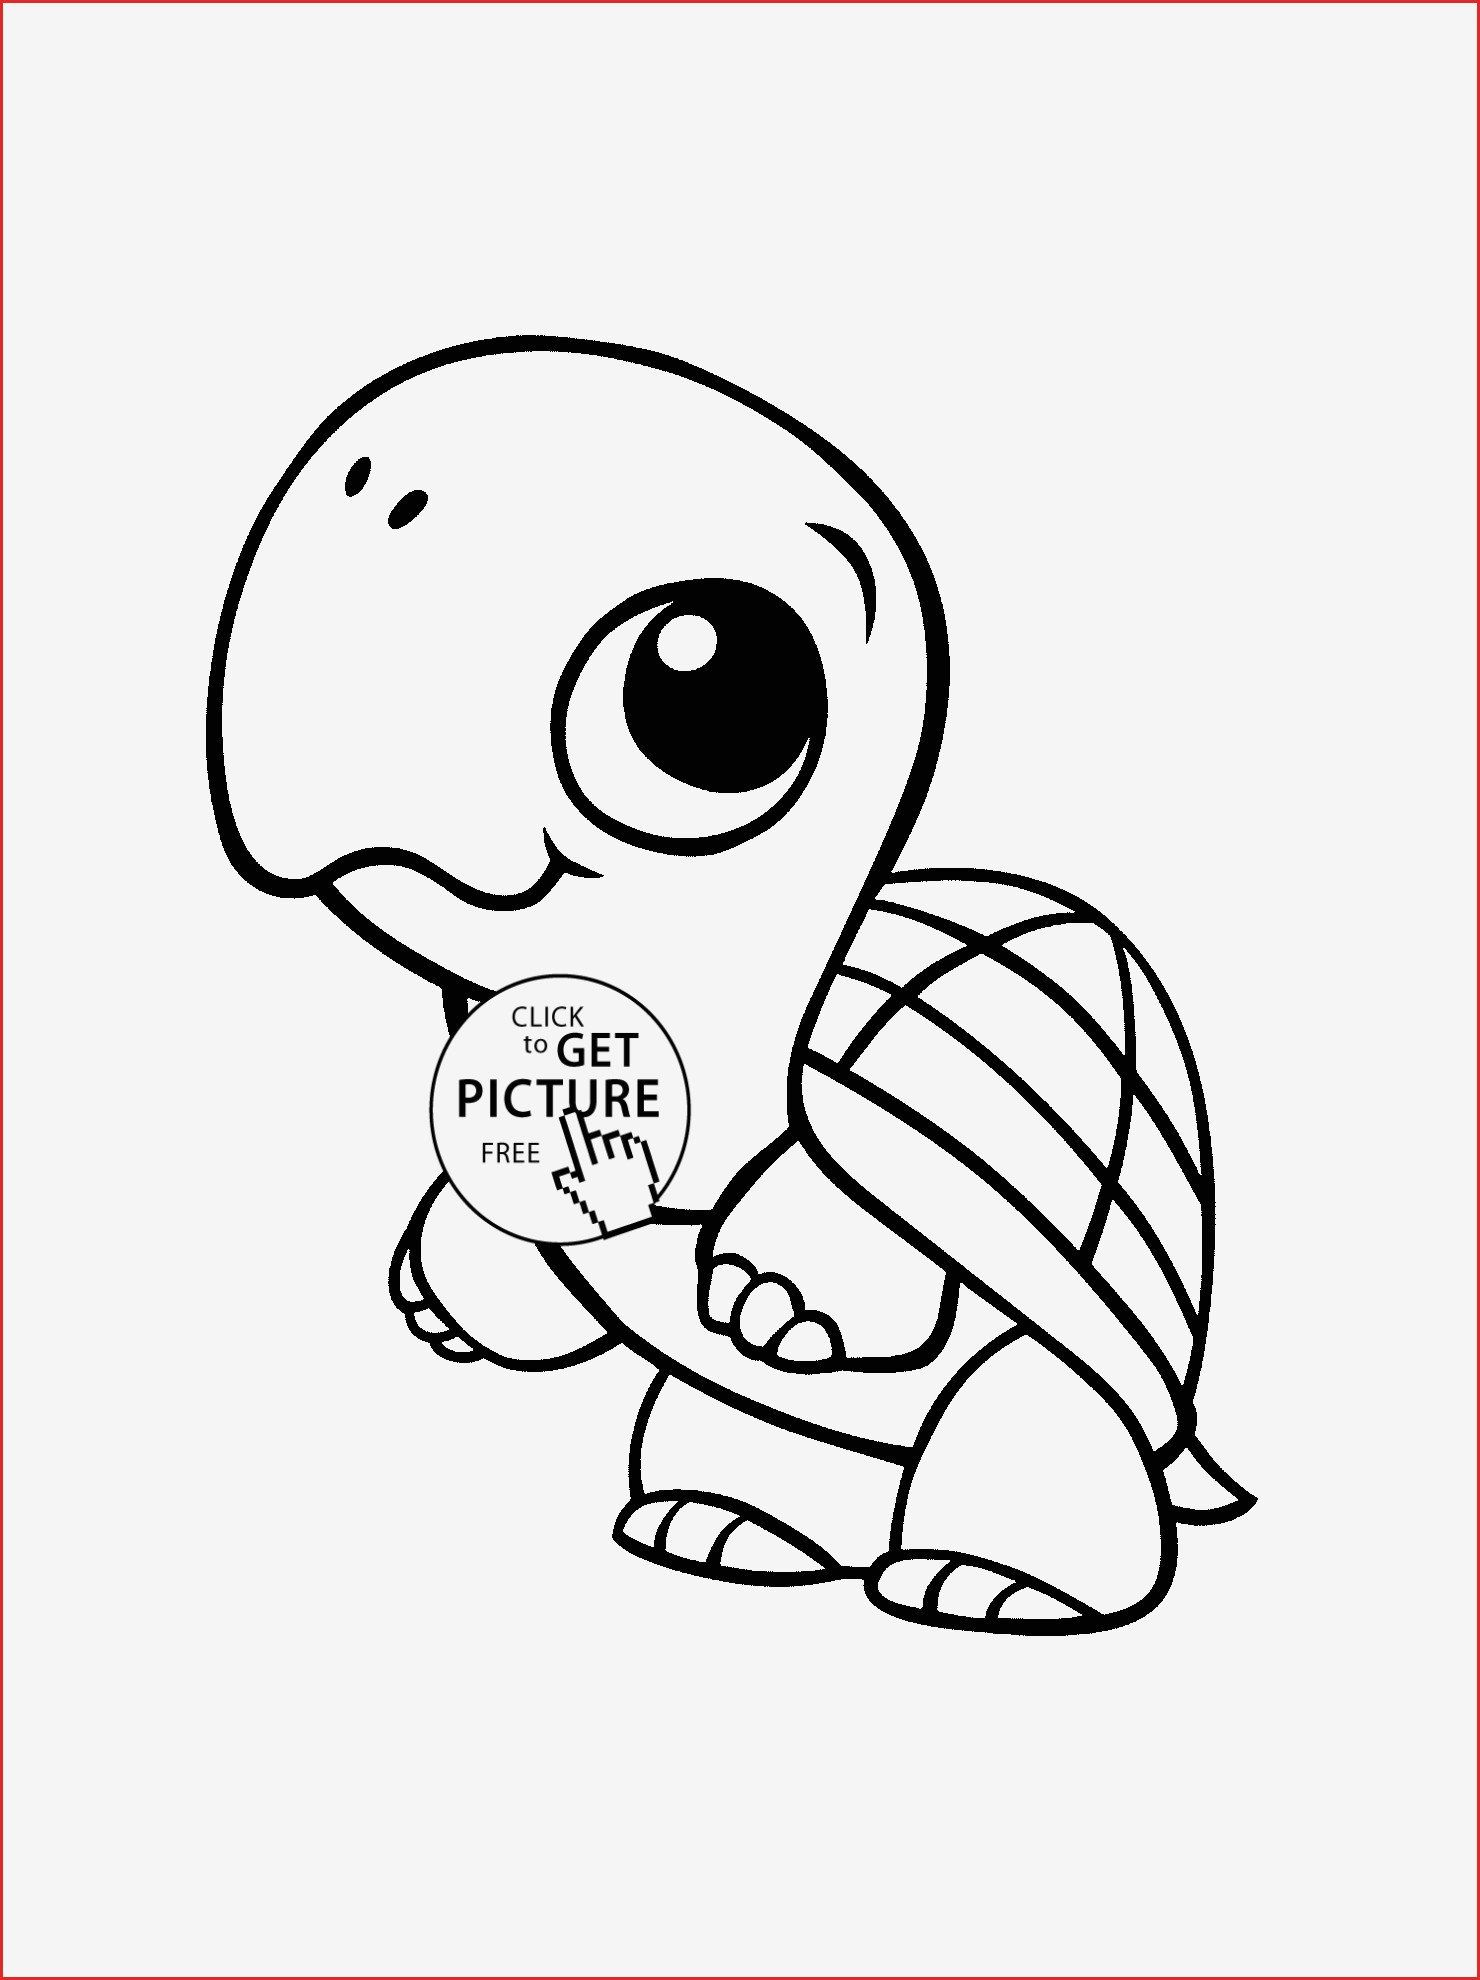 Fox Coloring Pages For Adults Awesome Baby Animals Coloring Pages Baby Fox Coloring Pages In 2020 Animal Coloring Pages Turtle Coloring Pages Cute Coloring Pages